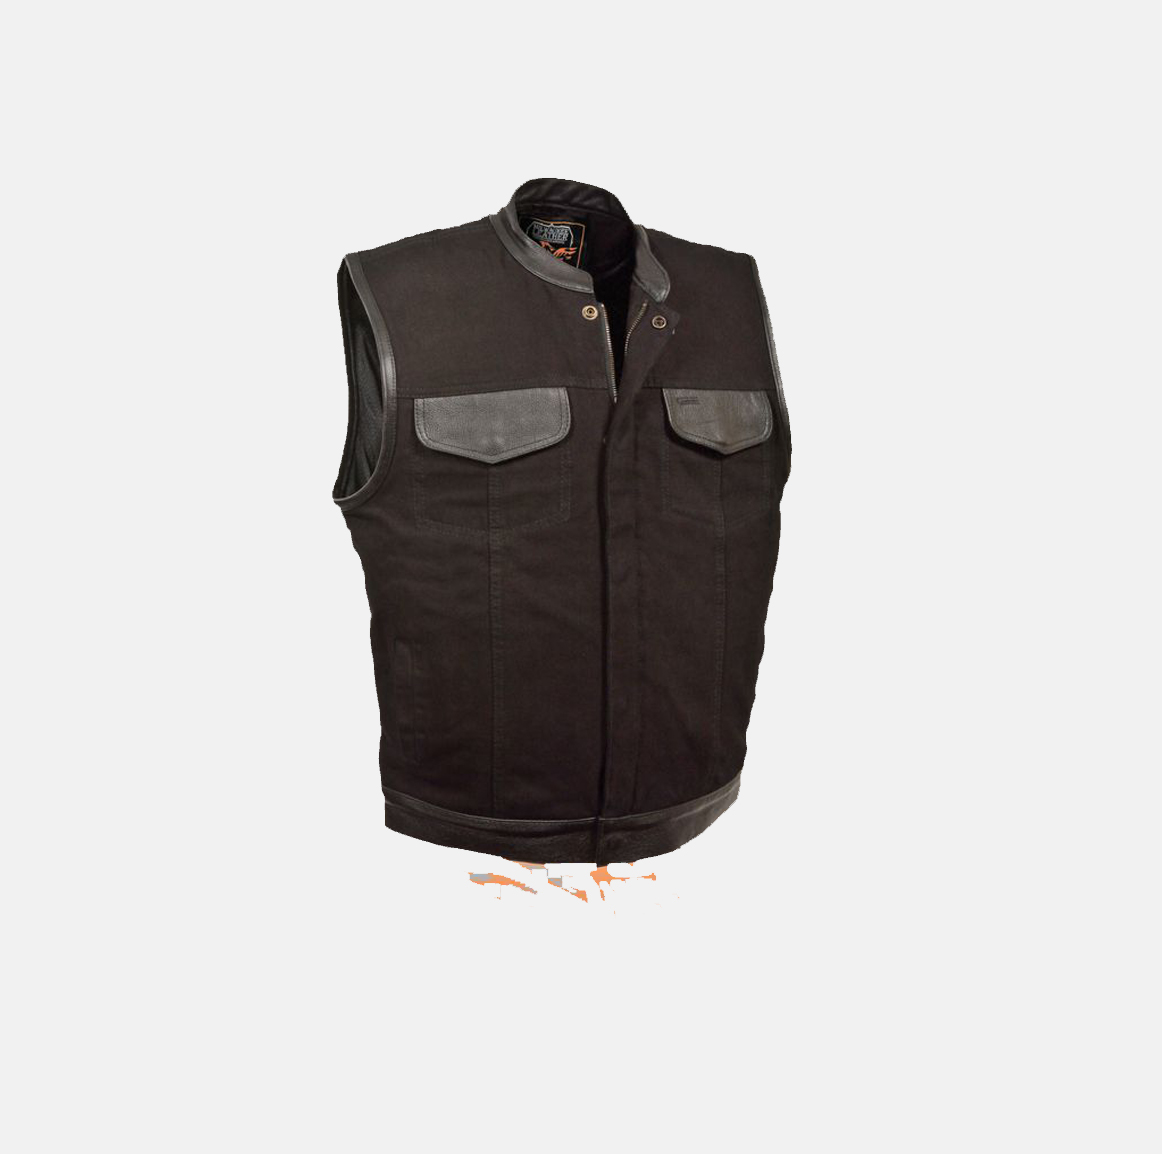 sons of anarchy clothing vest